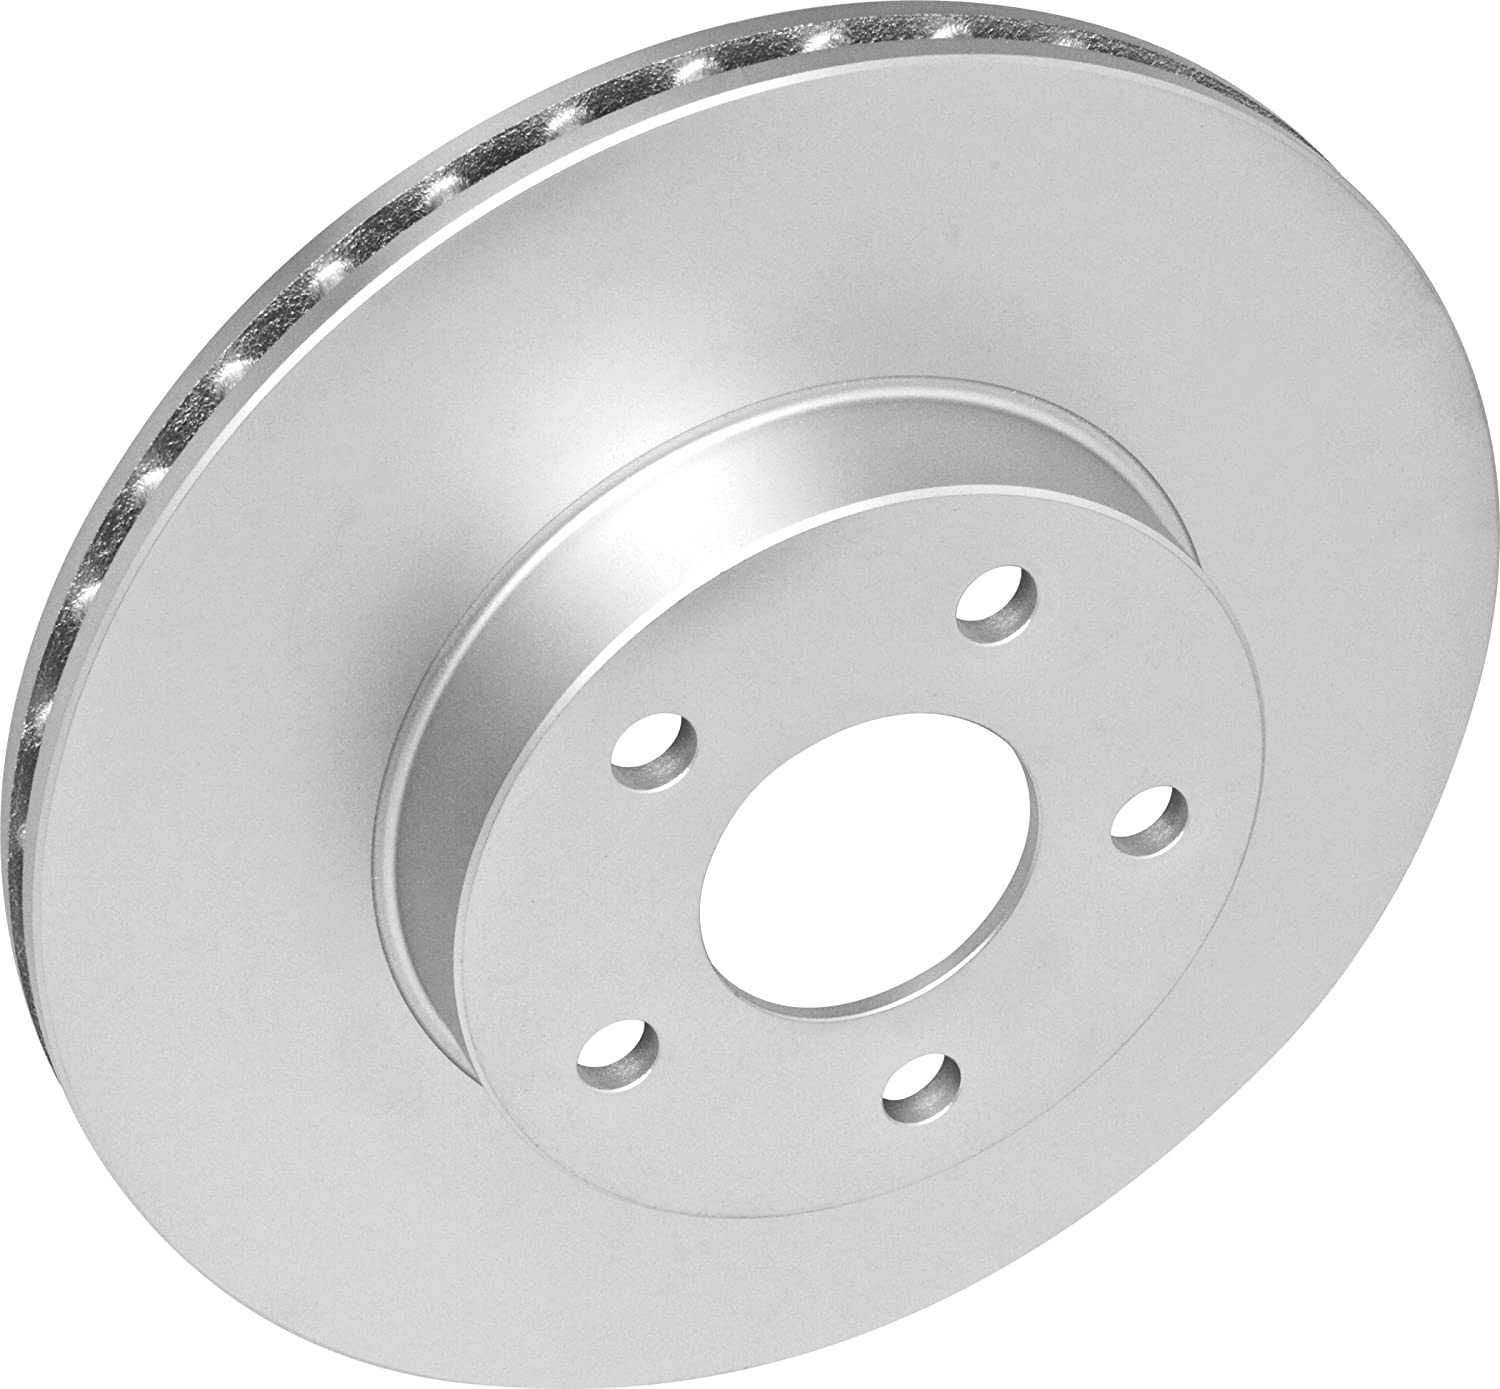 Bosch 52011377 QuietCast Premium Disc Brake Rotor